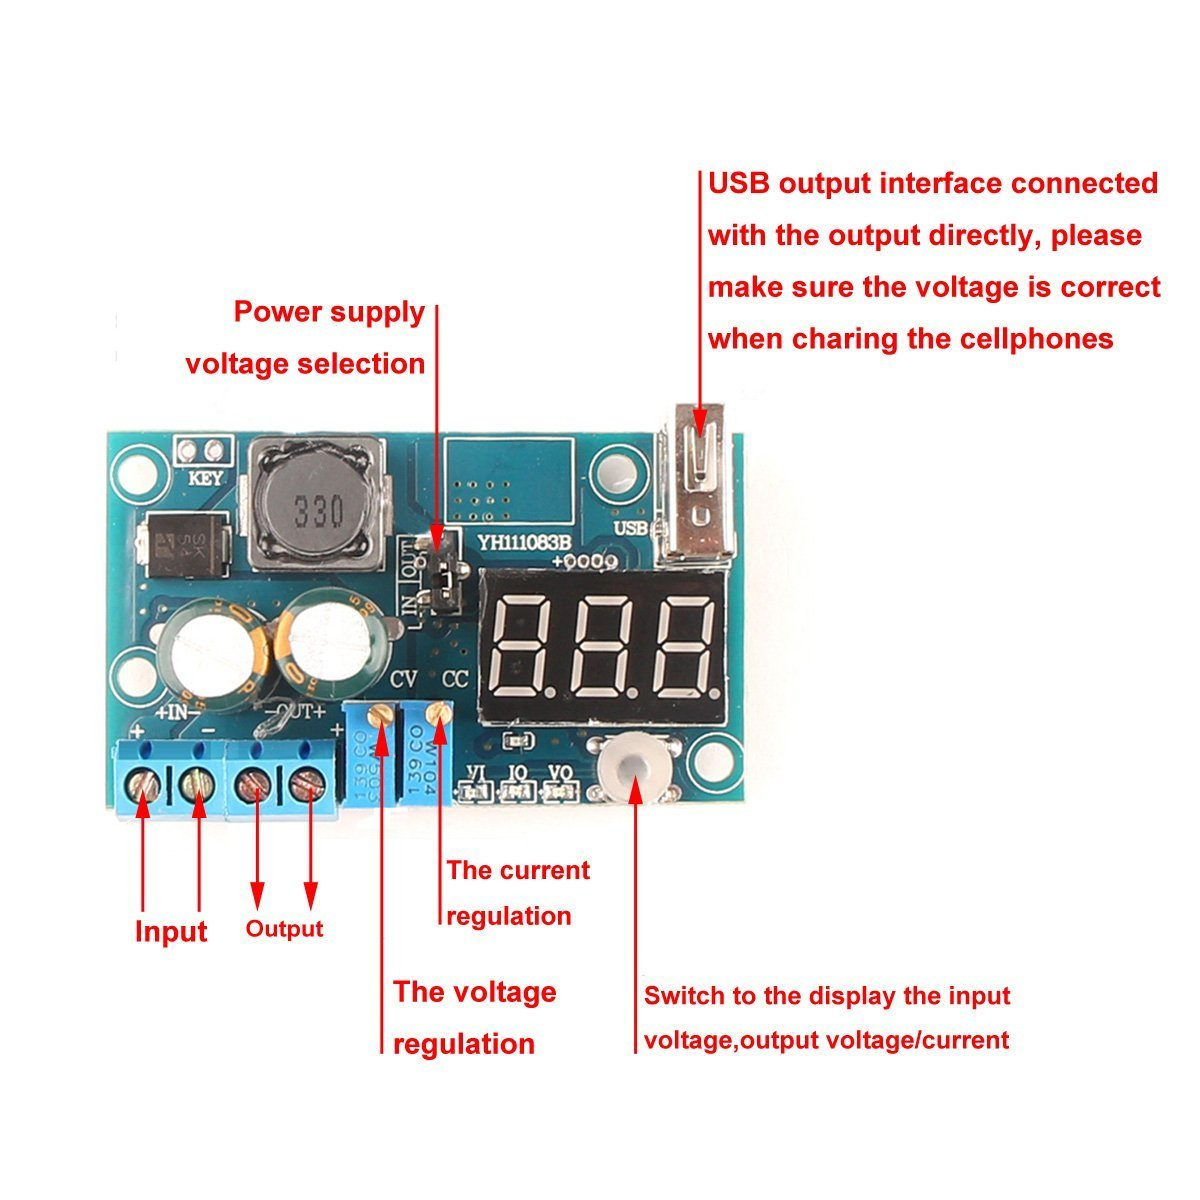 Riorand Lm2596 Dc Buck Converter Constant Current Voltage Cvcc Power Supplies Schematic Electronics